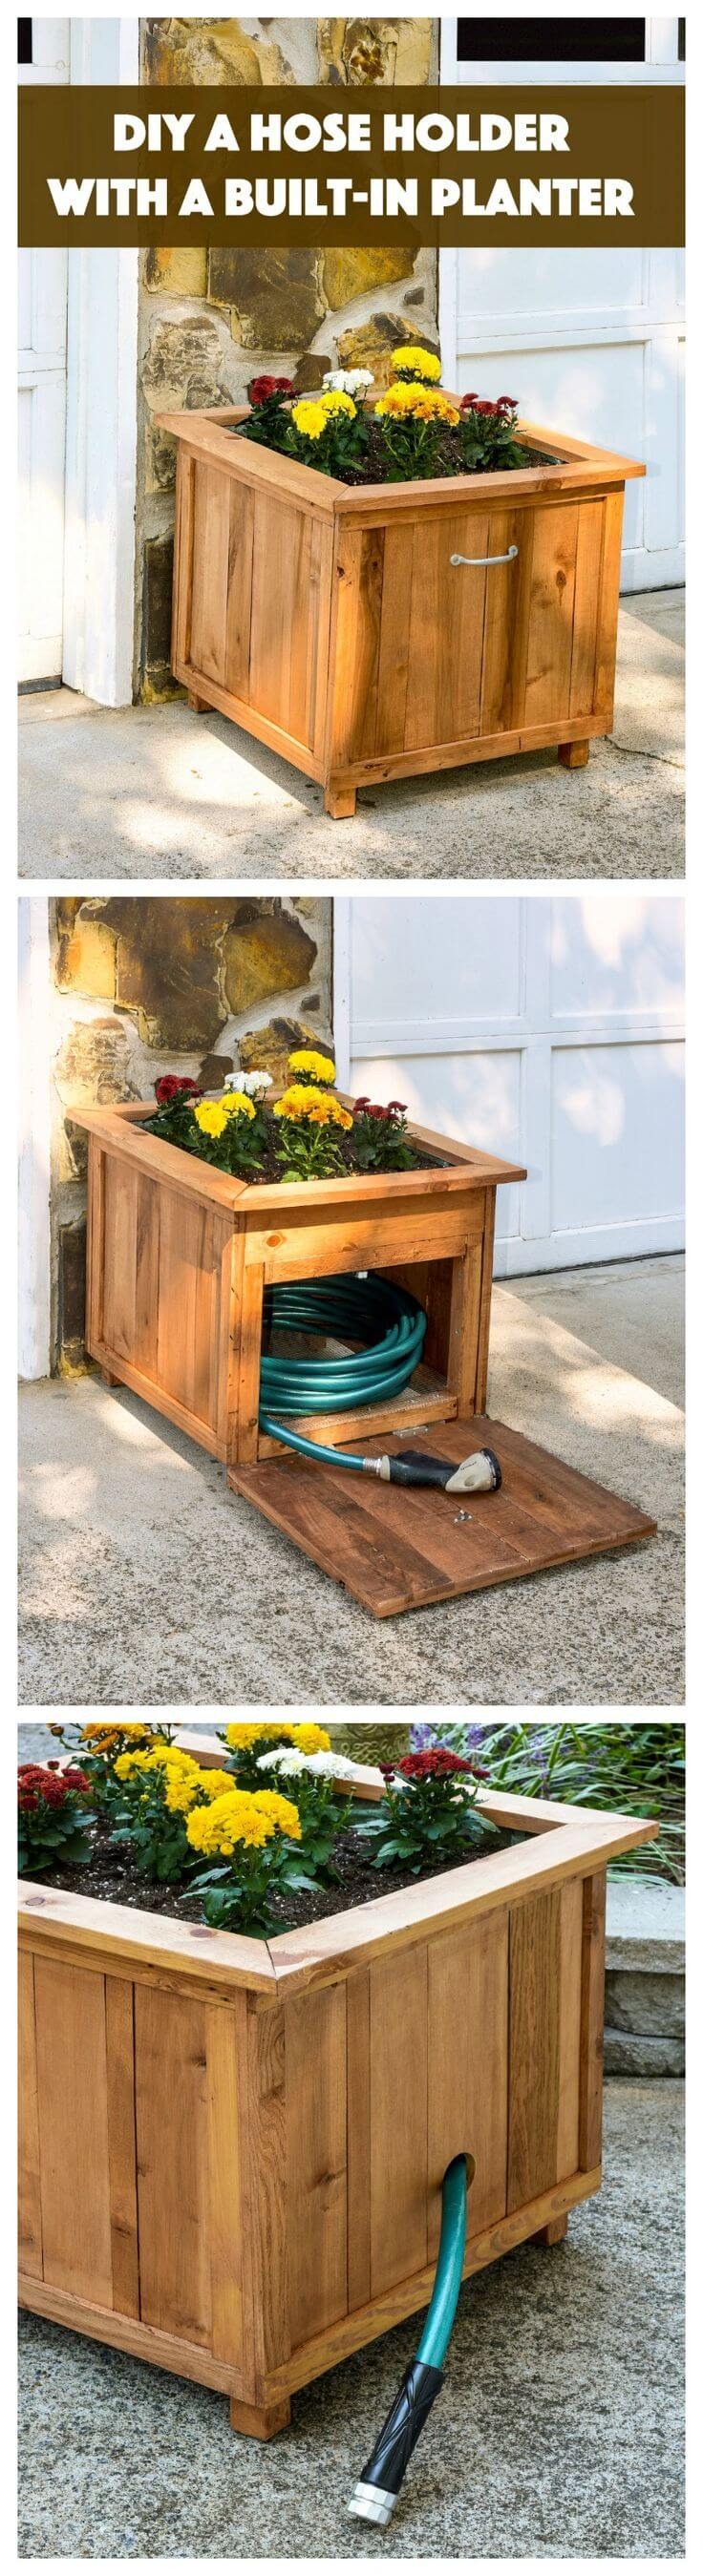 Gardener's Helper Planter Box & Hose Holder